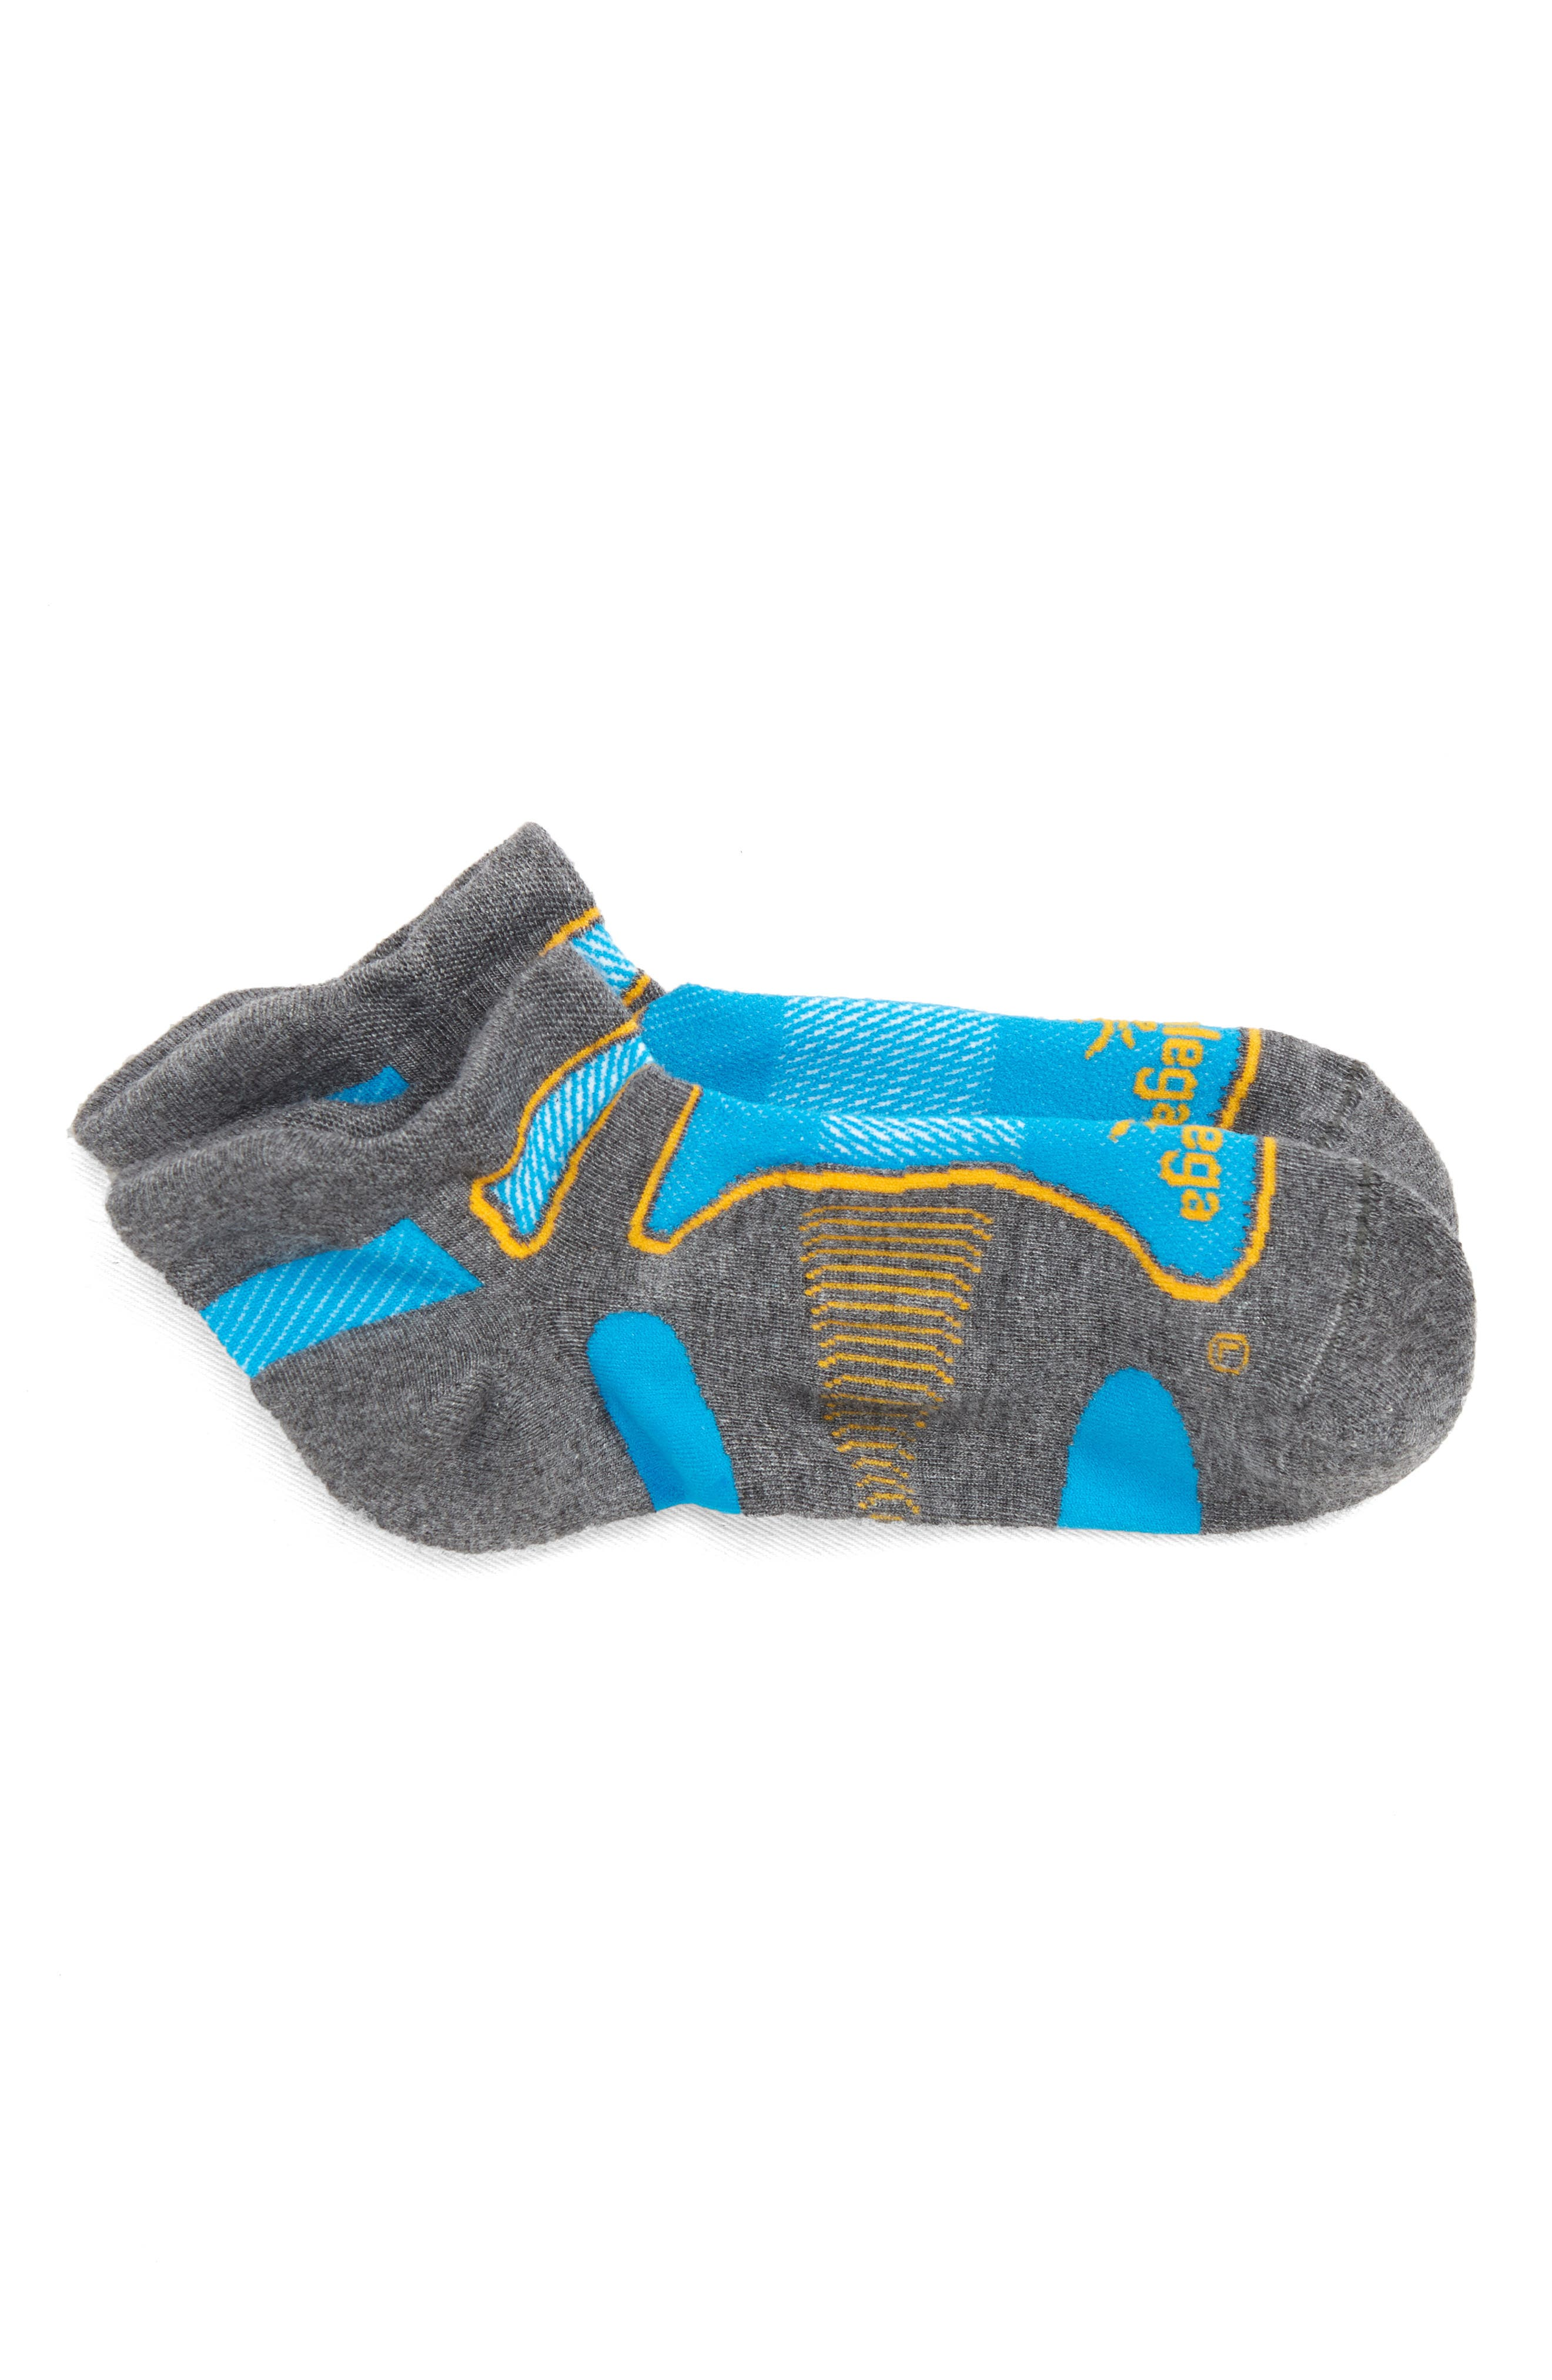 Silver Socks,                             Main thumbnail 1, color,                             Bright Turquoise/ Ink